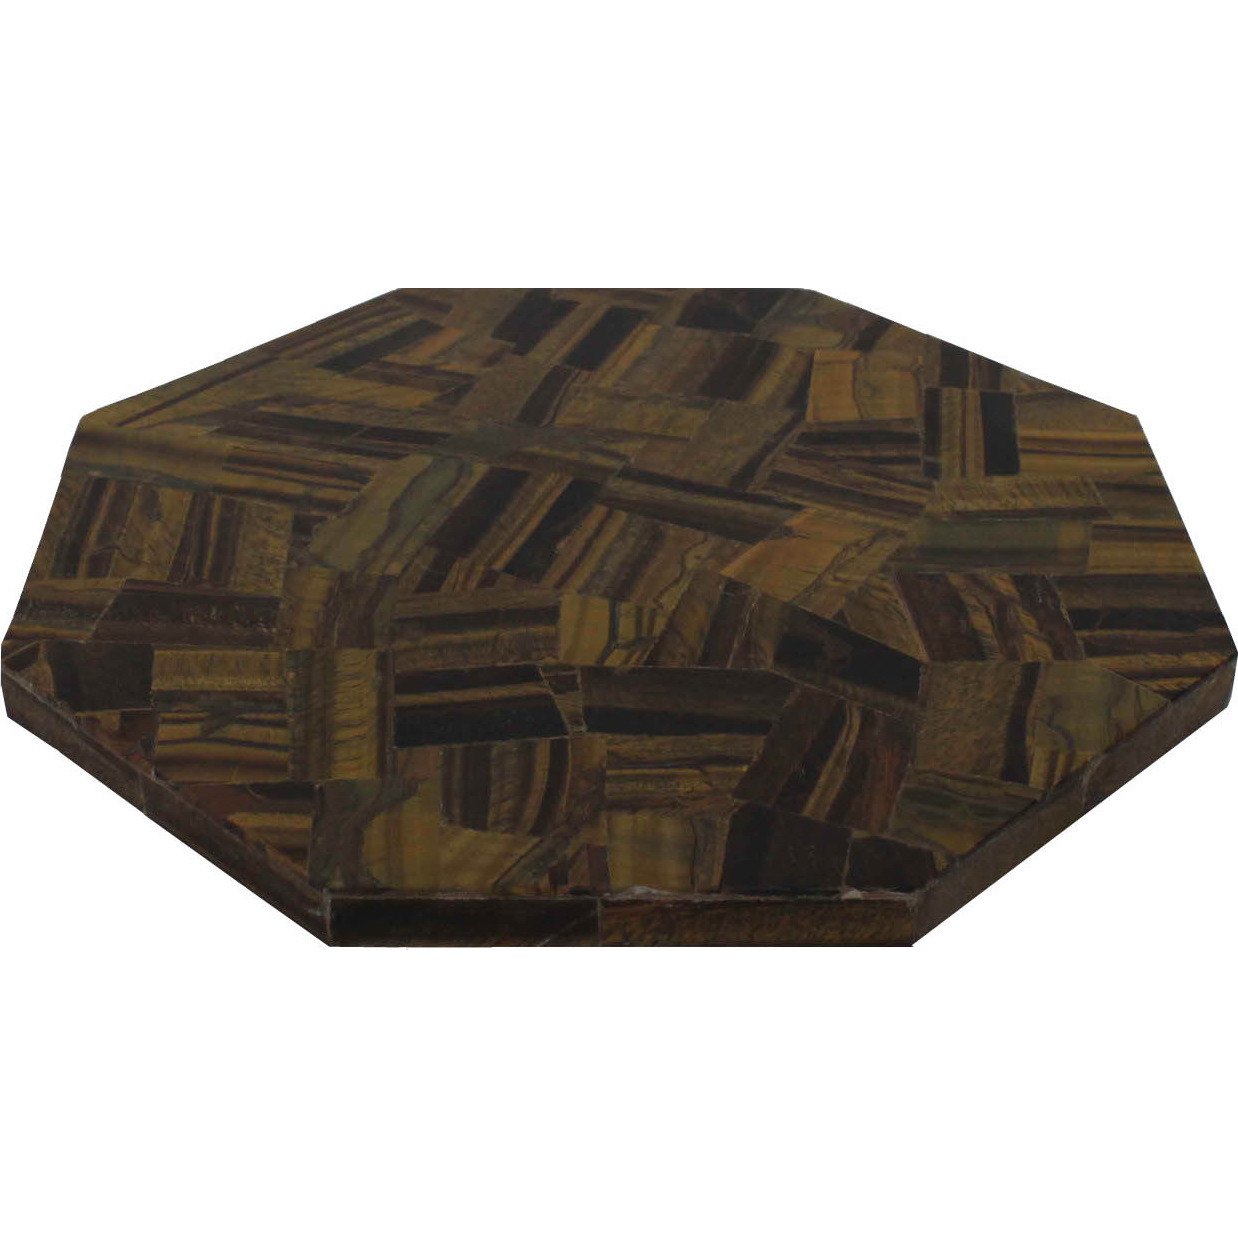 Marble table top - Black Marble Table Top